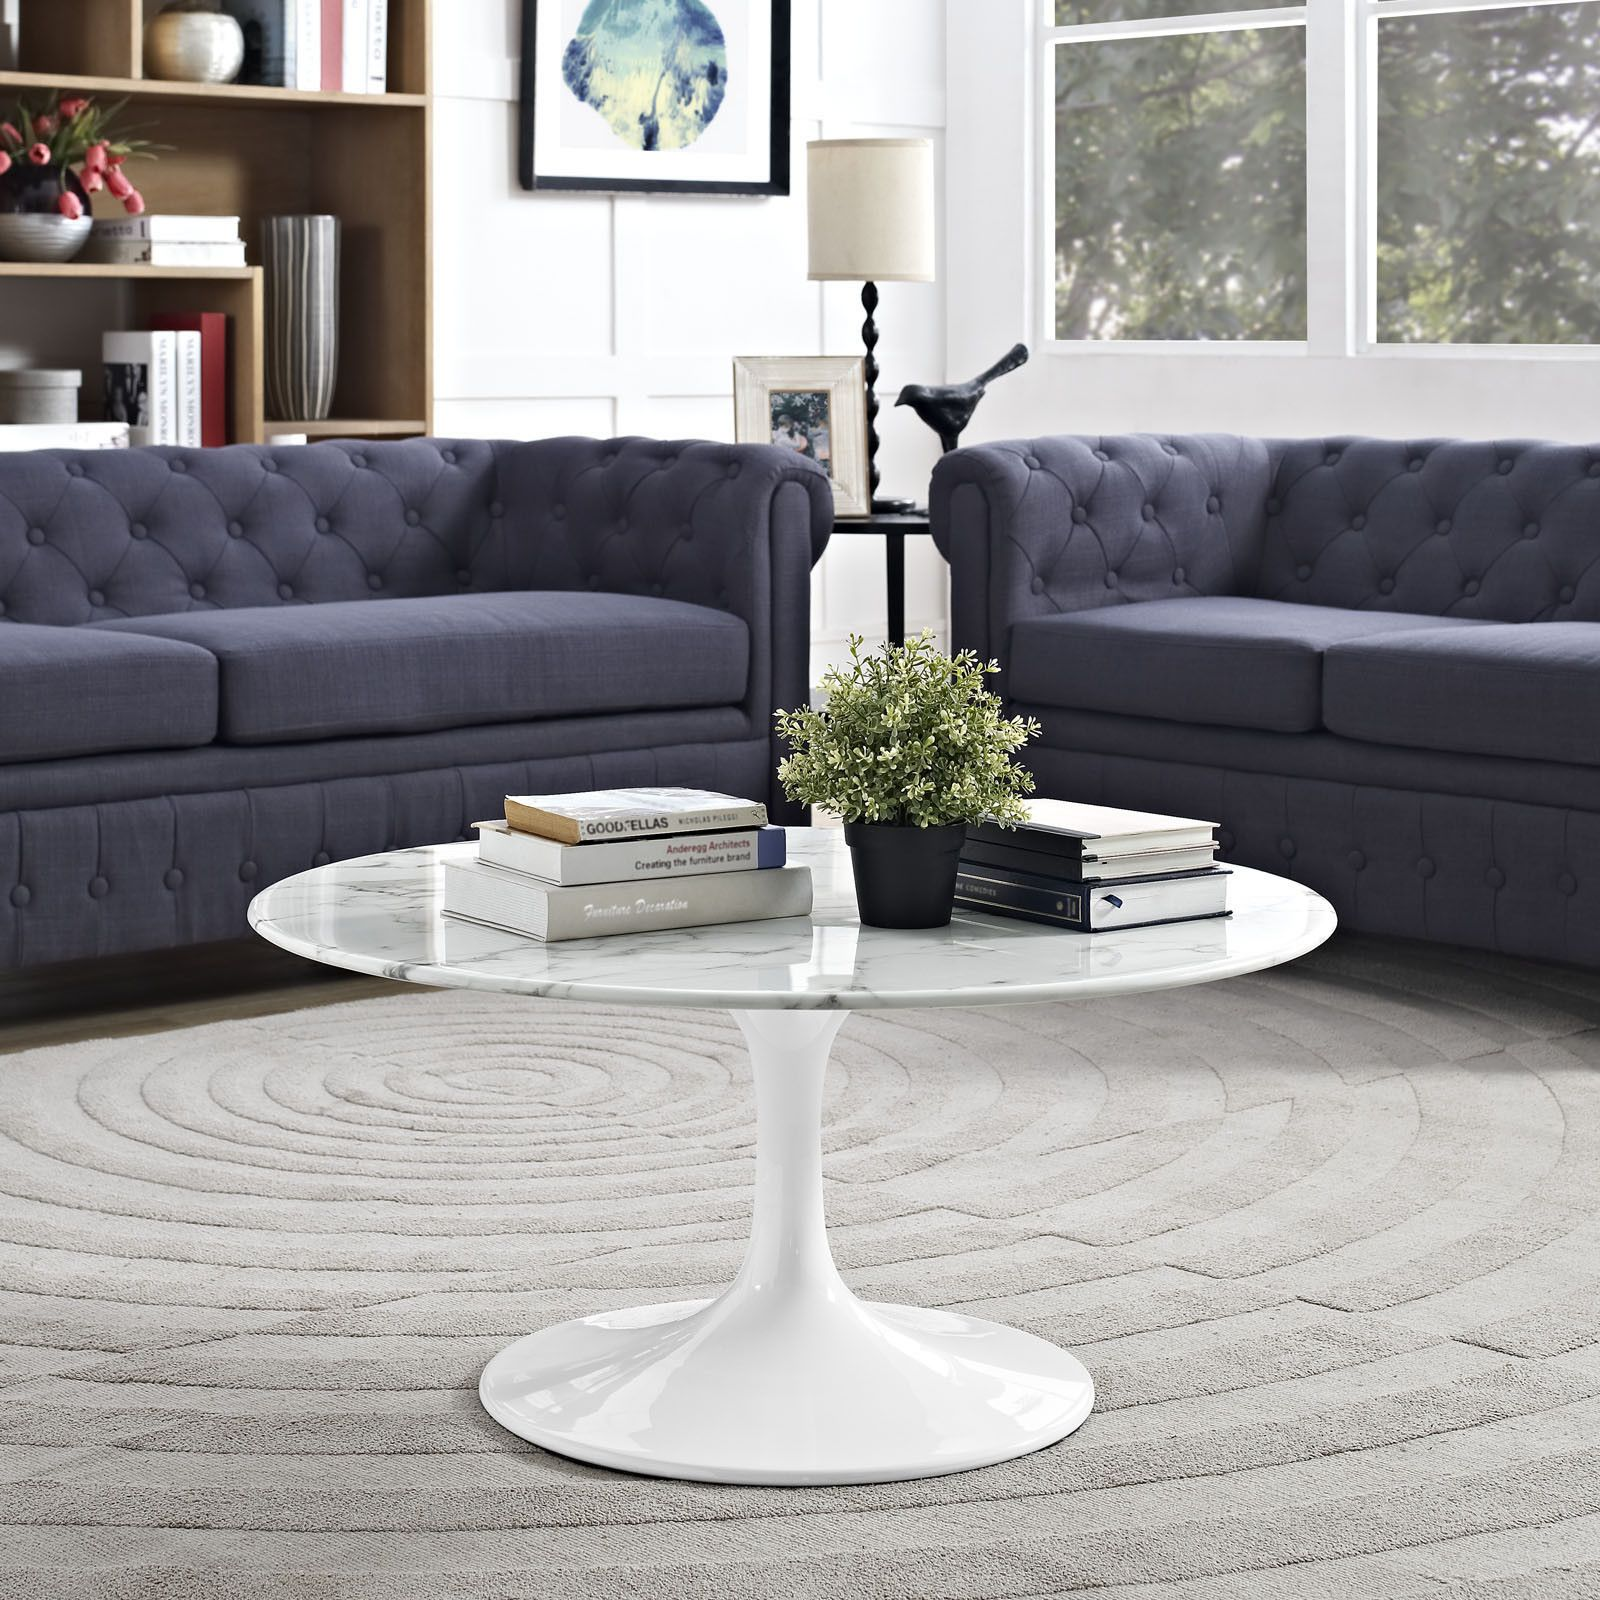 Modway Lippa Coffee Table Coffee Table Modern Furniture Living Room Coffee Table White [ 1600 x 1600 Pixel ]